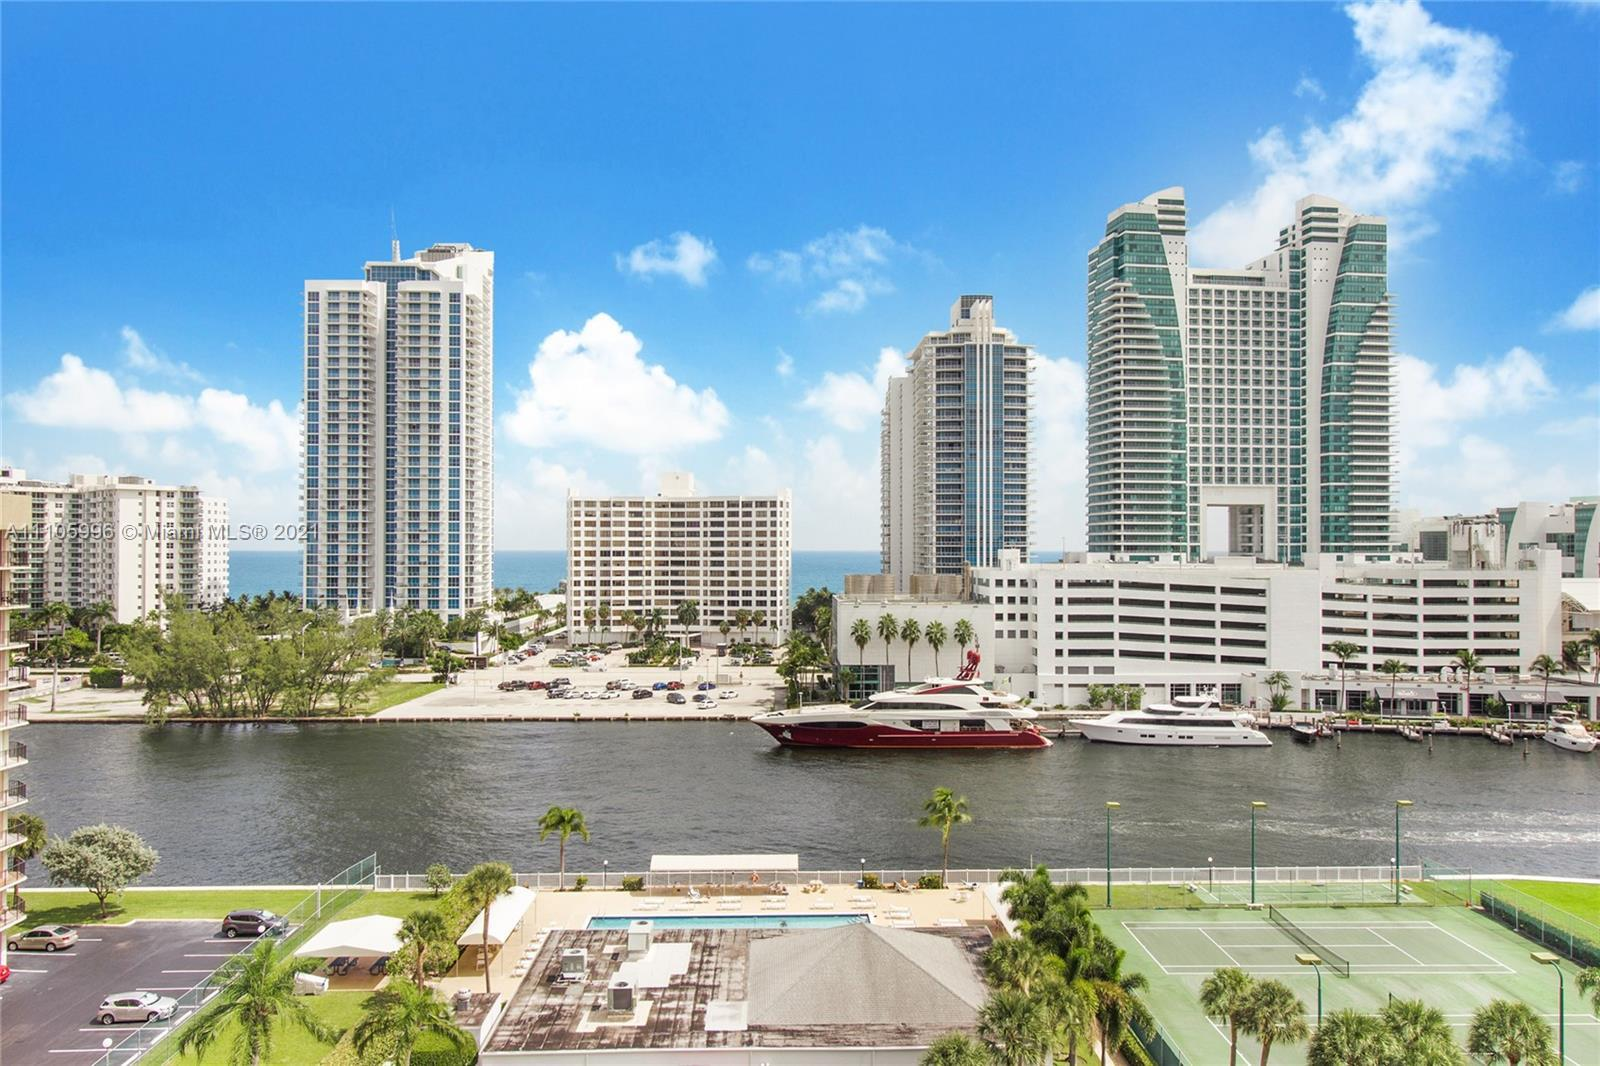 Property is located in the Three Island area, on the Intracoastal inlet with breathtaking views to O